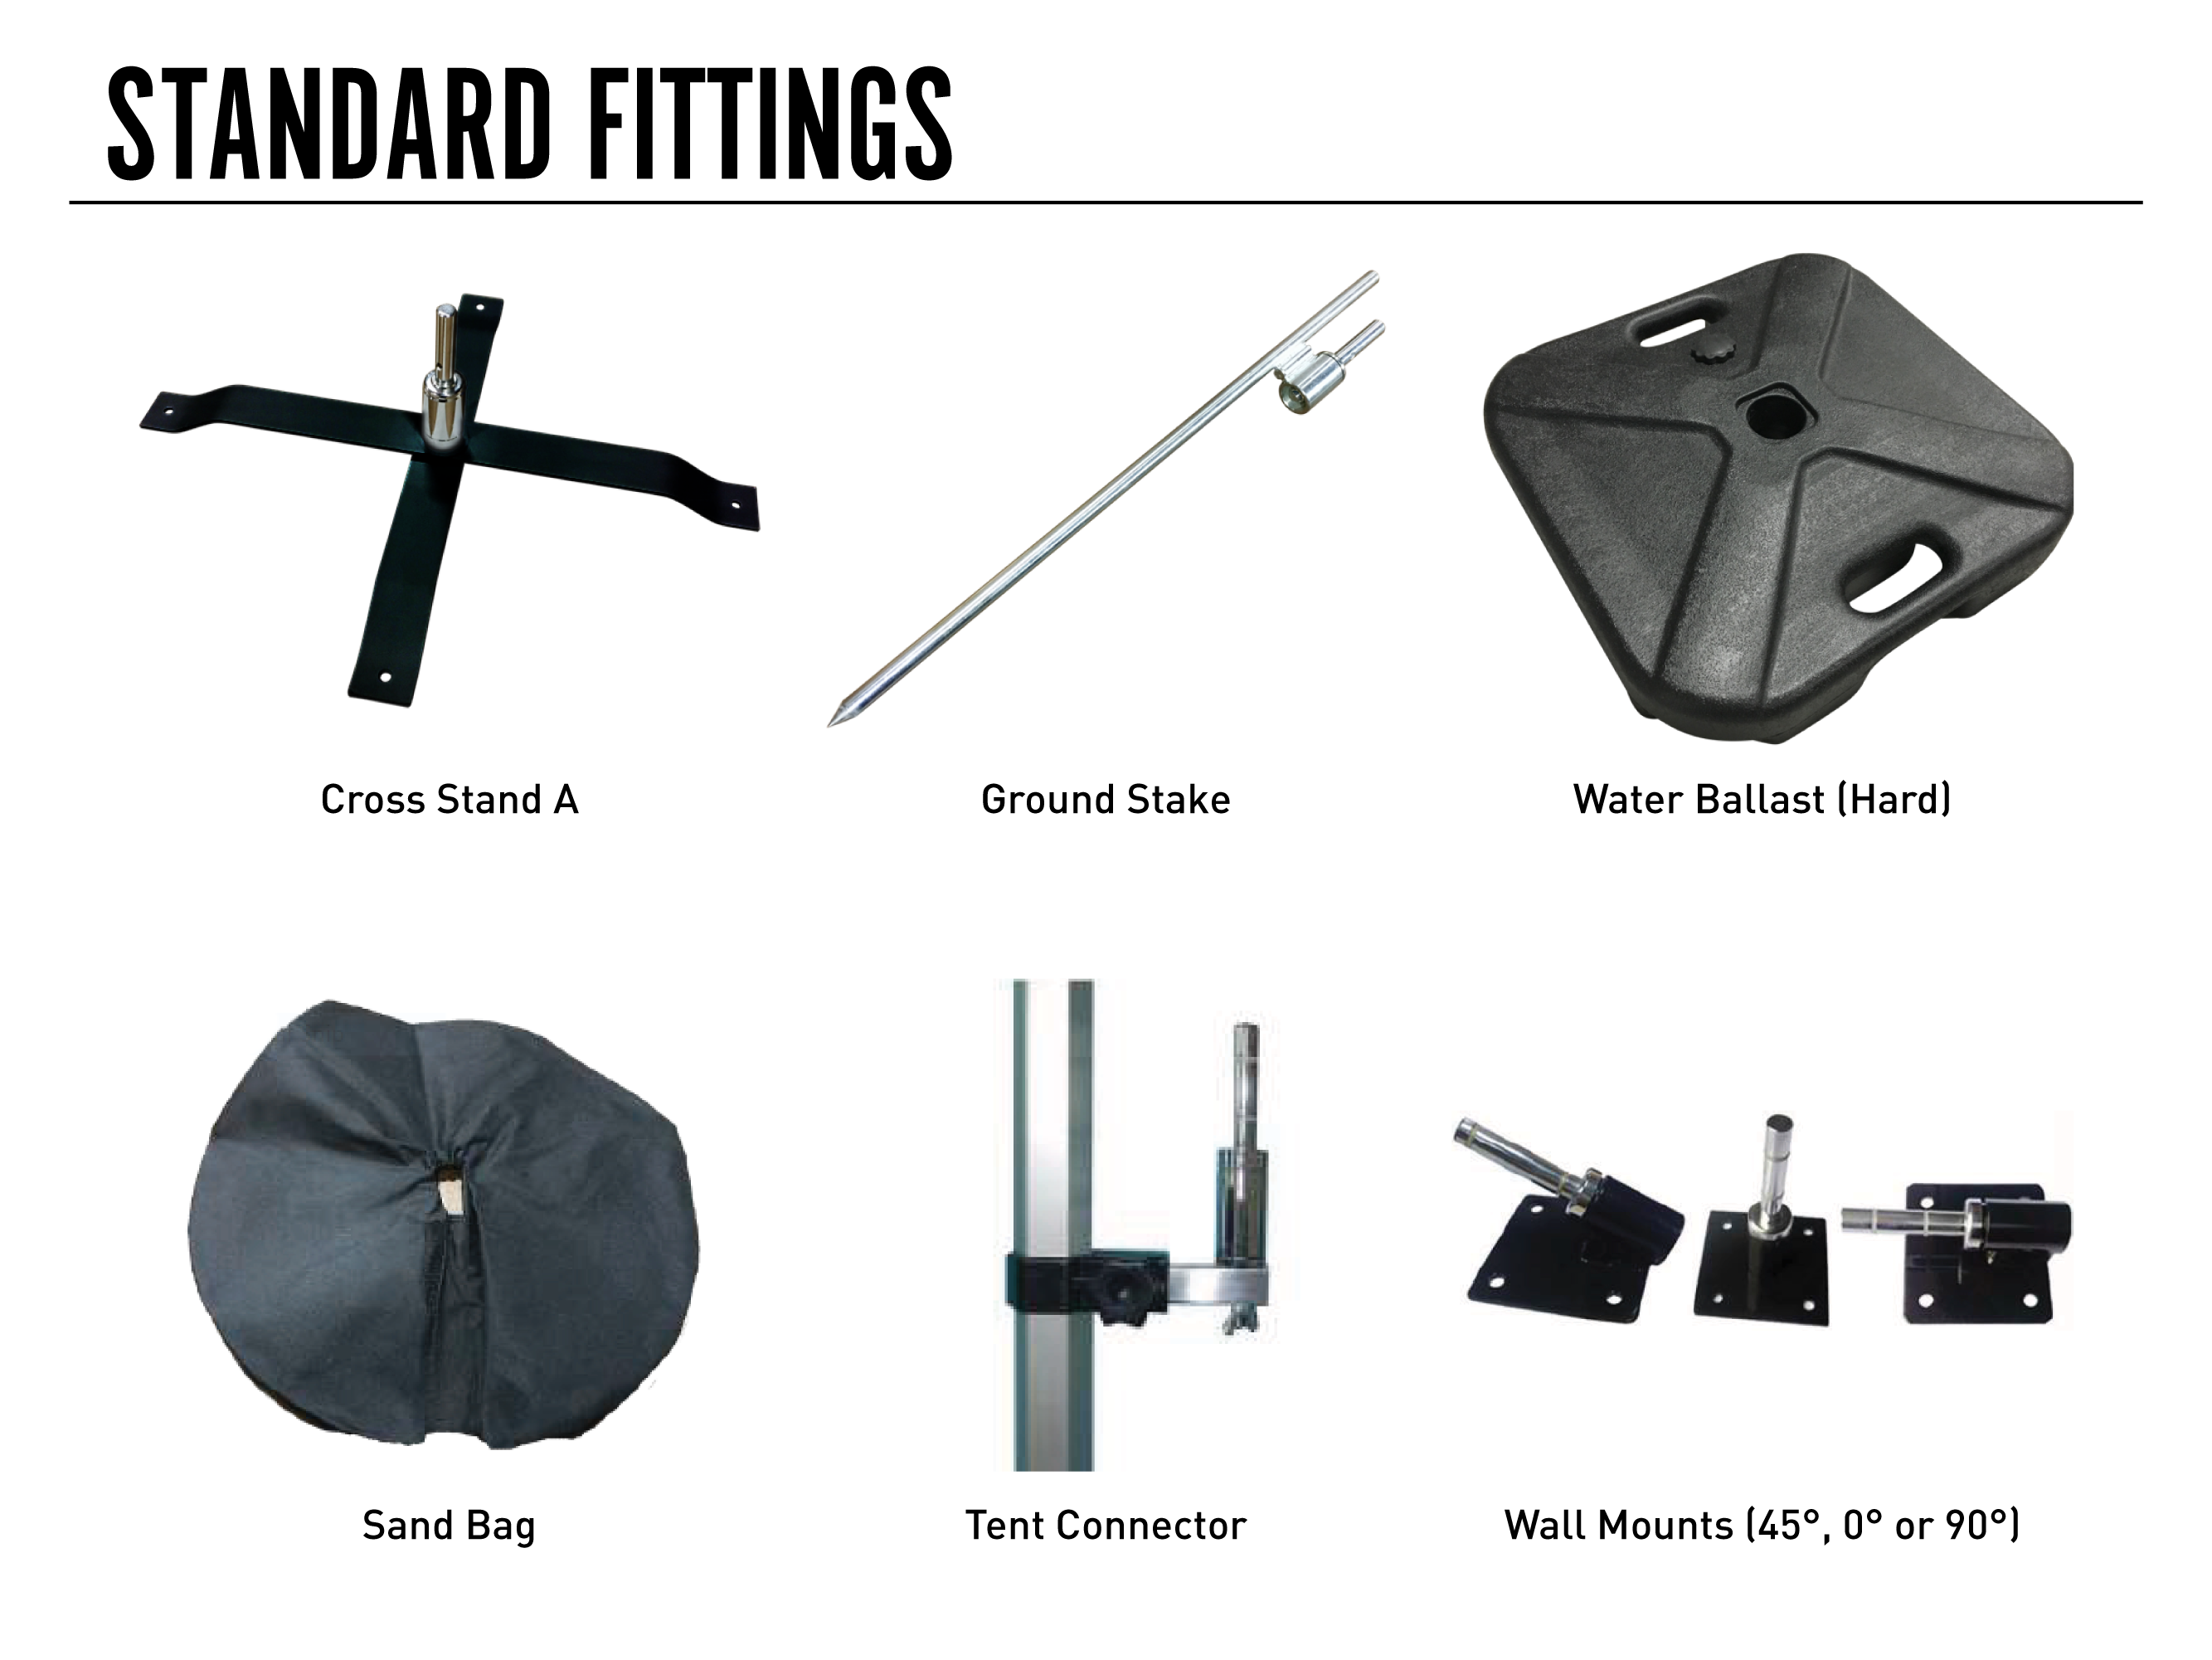 Standard Flag Fittings